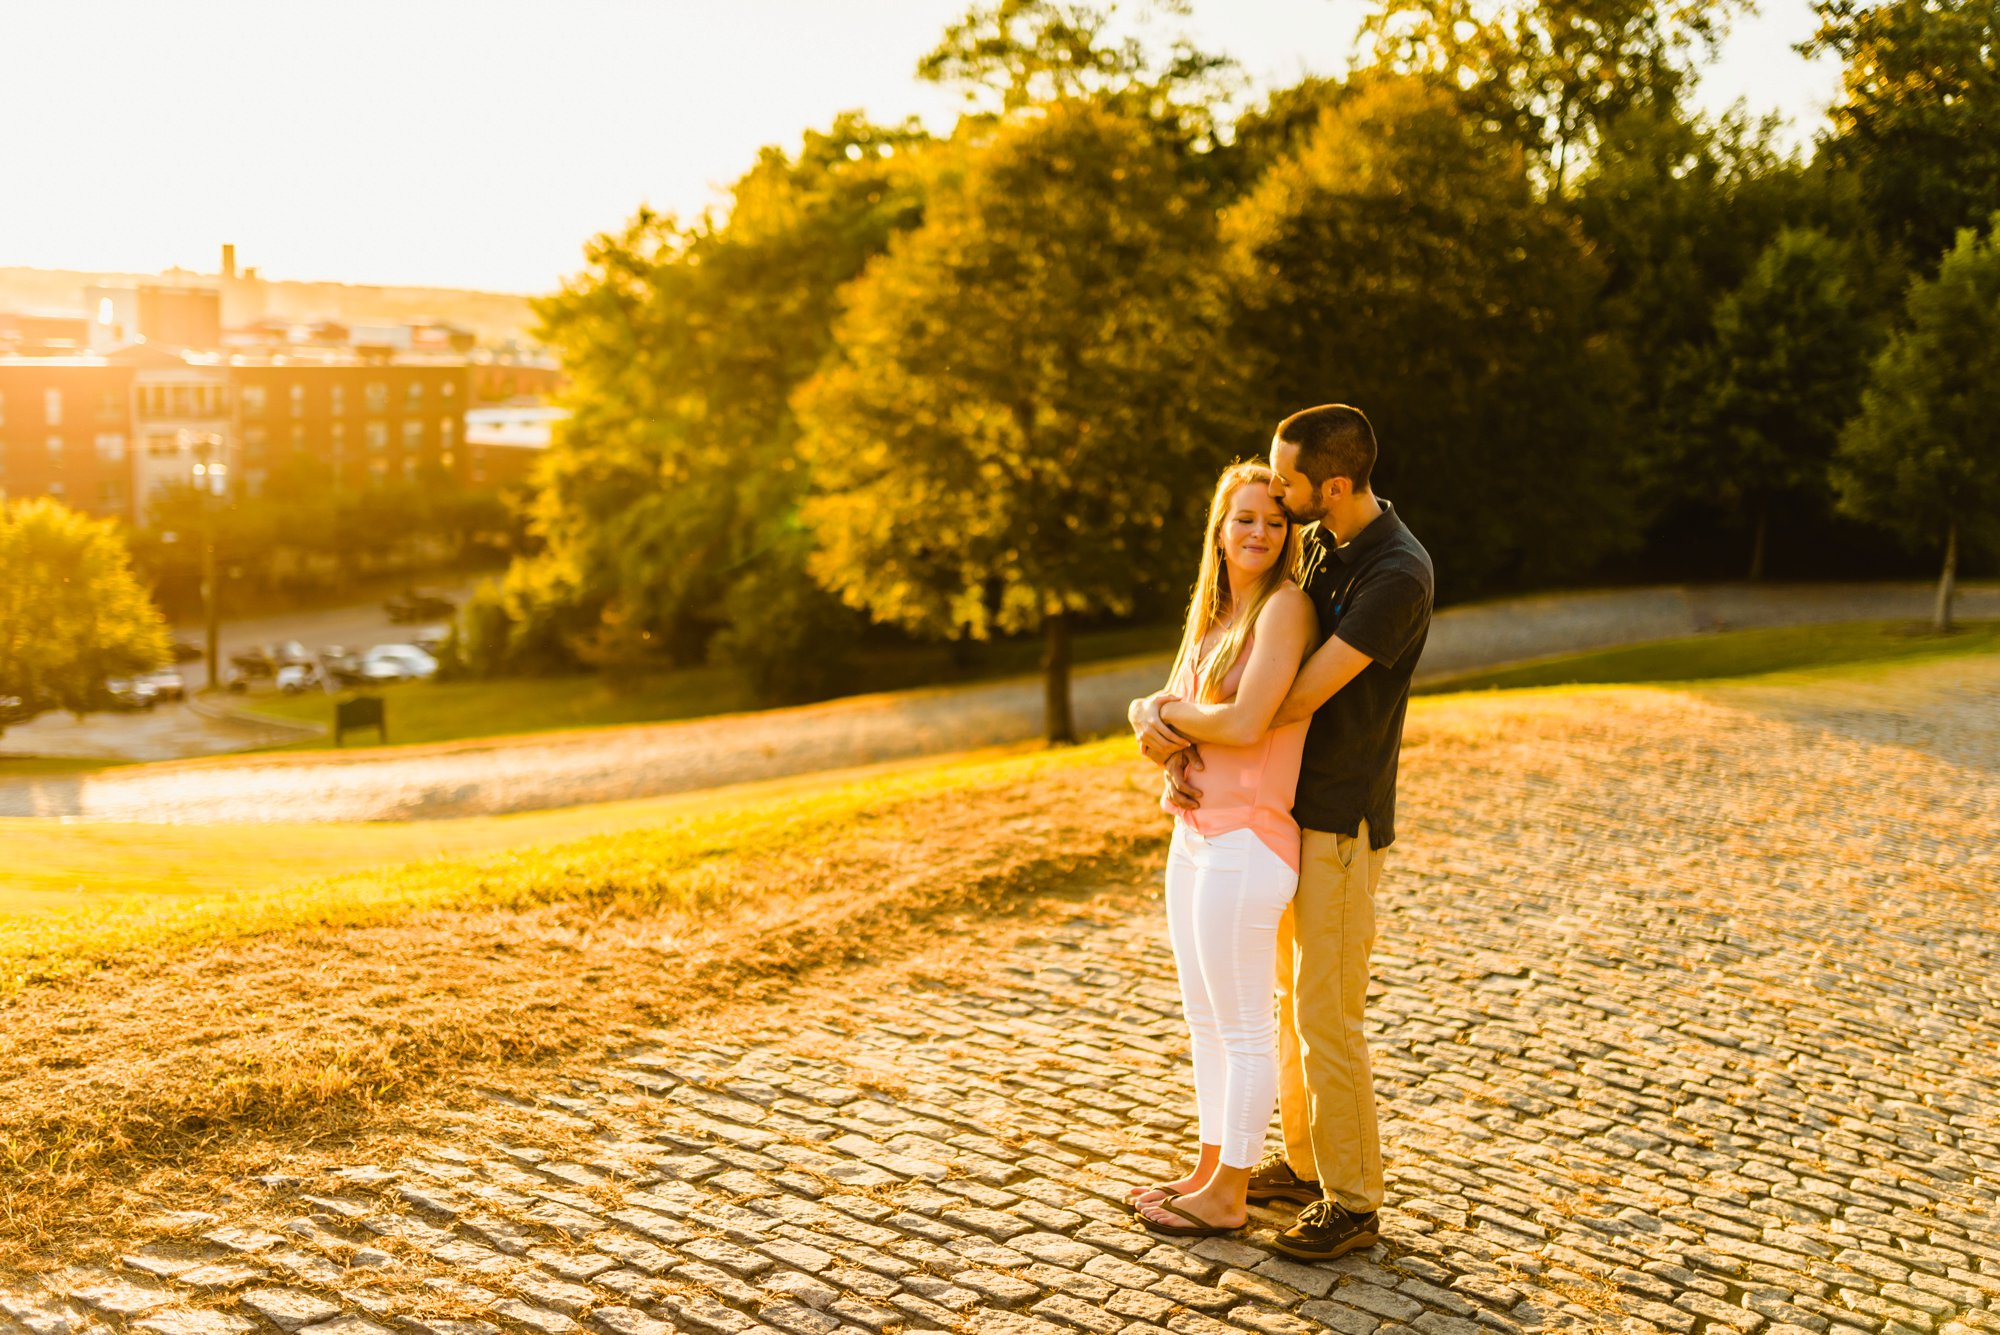 engagement-photography-88-love-stories-6.jpg